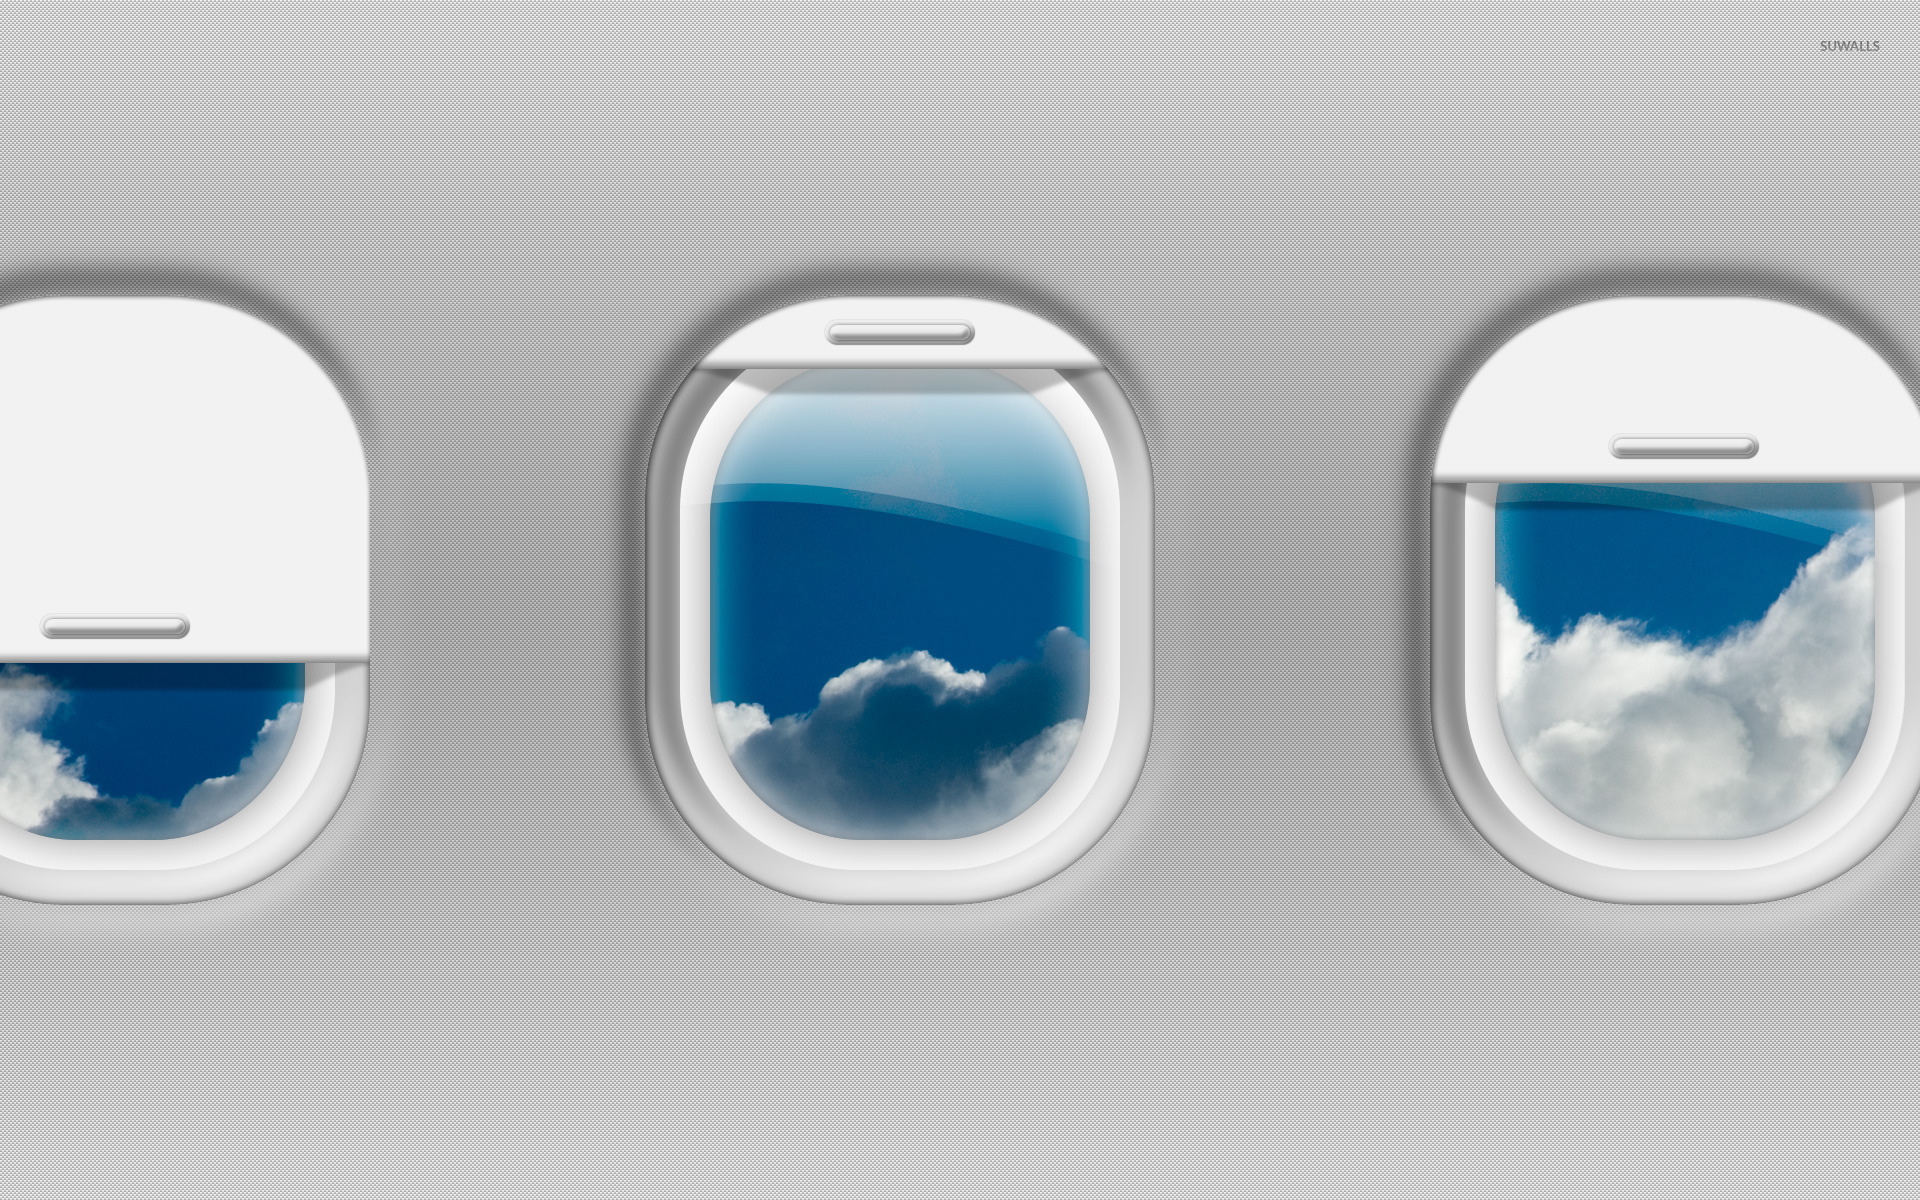 Funny Quotes Free Wallpaper Airplane Windows Wallpaper Digital Art Wallpapers 24679